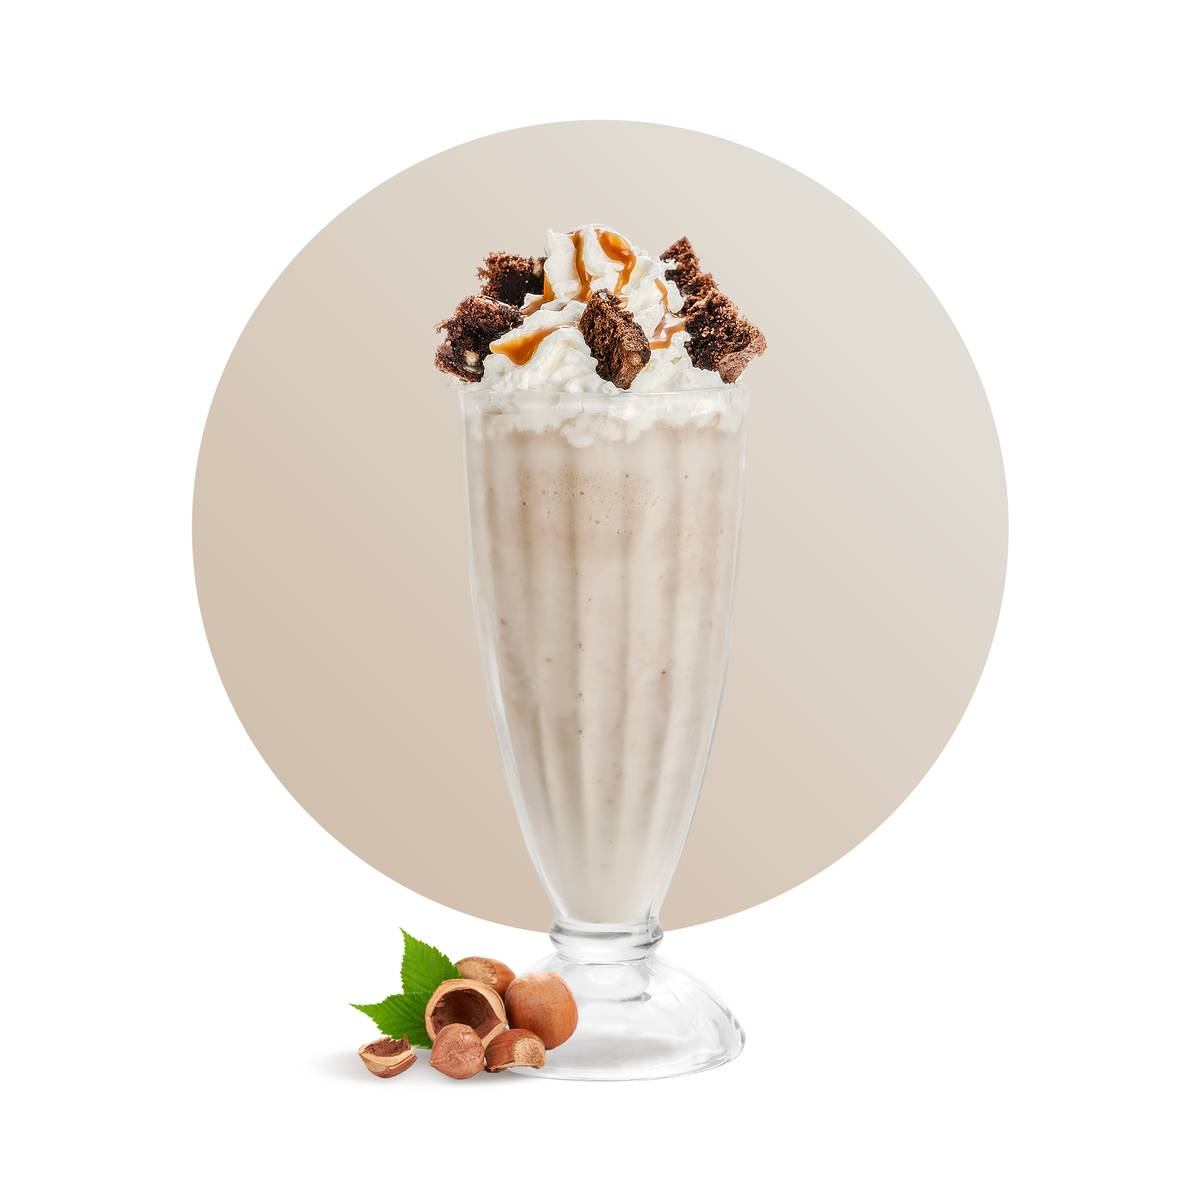 Roasted Hazelnut Frappe Drink Recipe